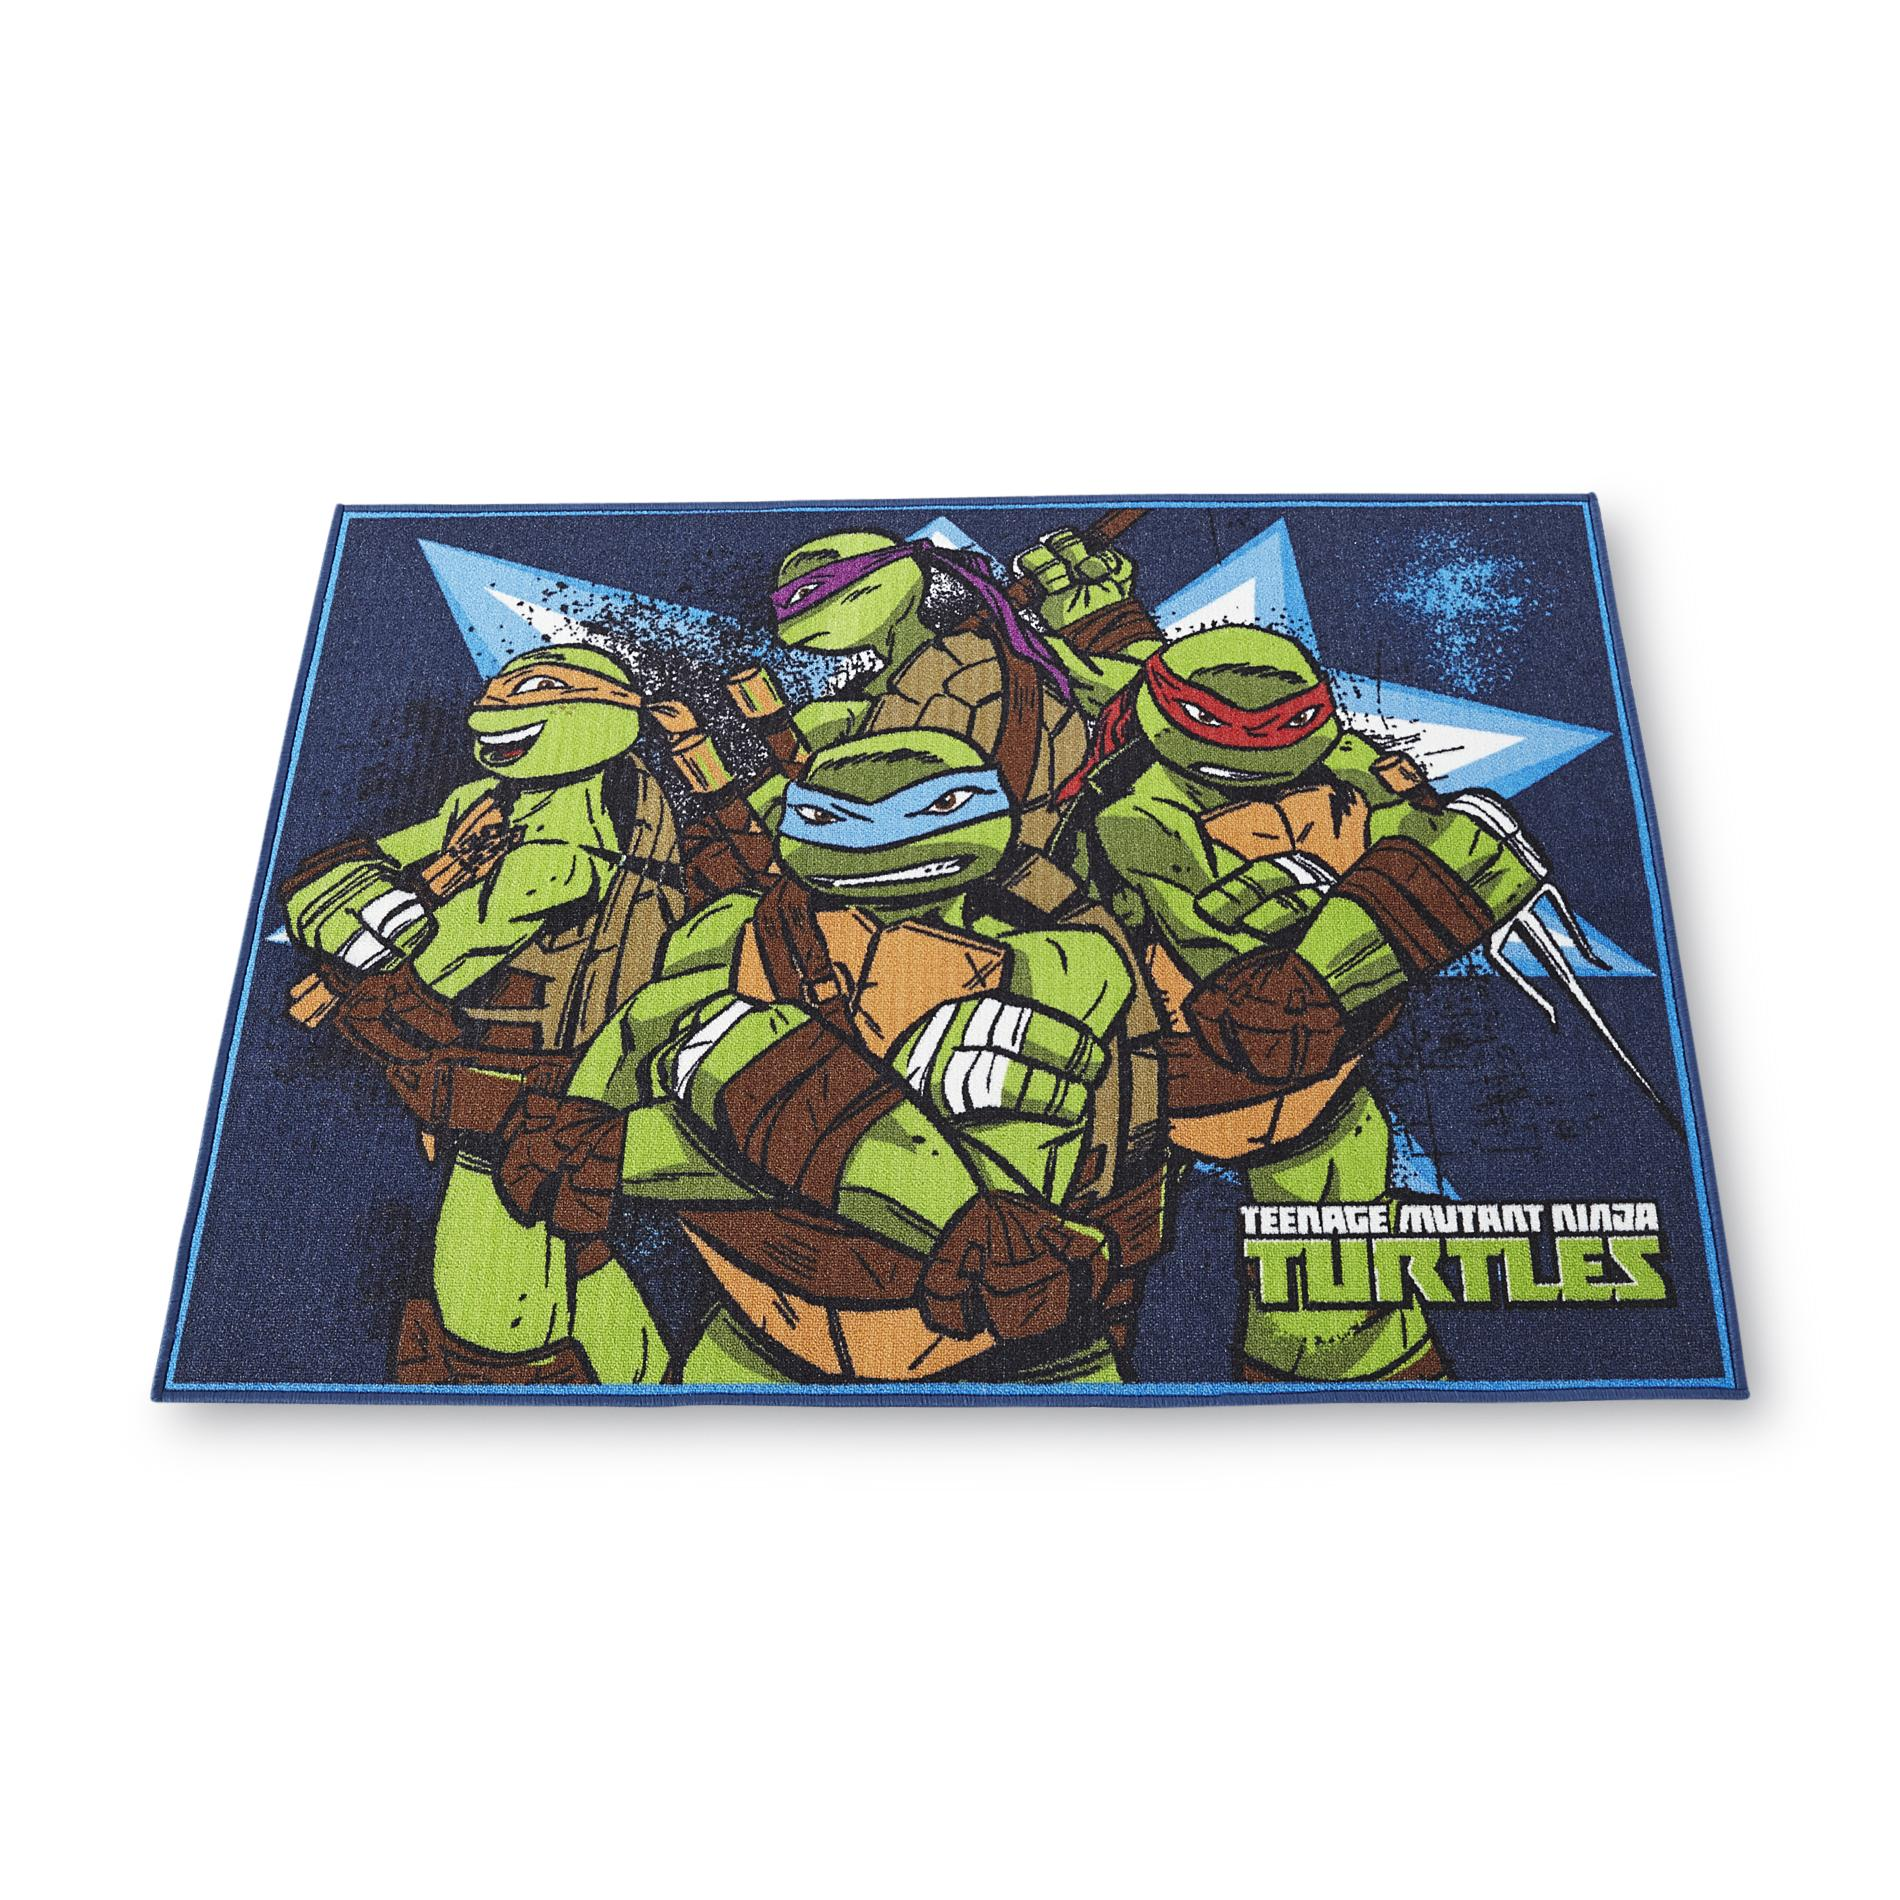 Image of Nickelodeon 40 x 45 Area Rug - Teenage Mutant Ninja Turtles, Size: 3 ft. x 5 ft., Green